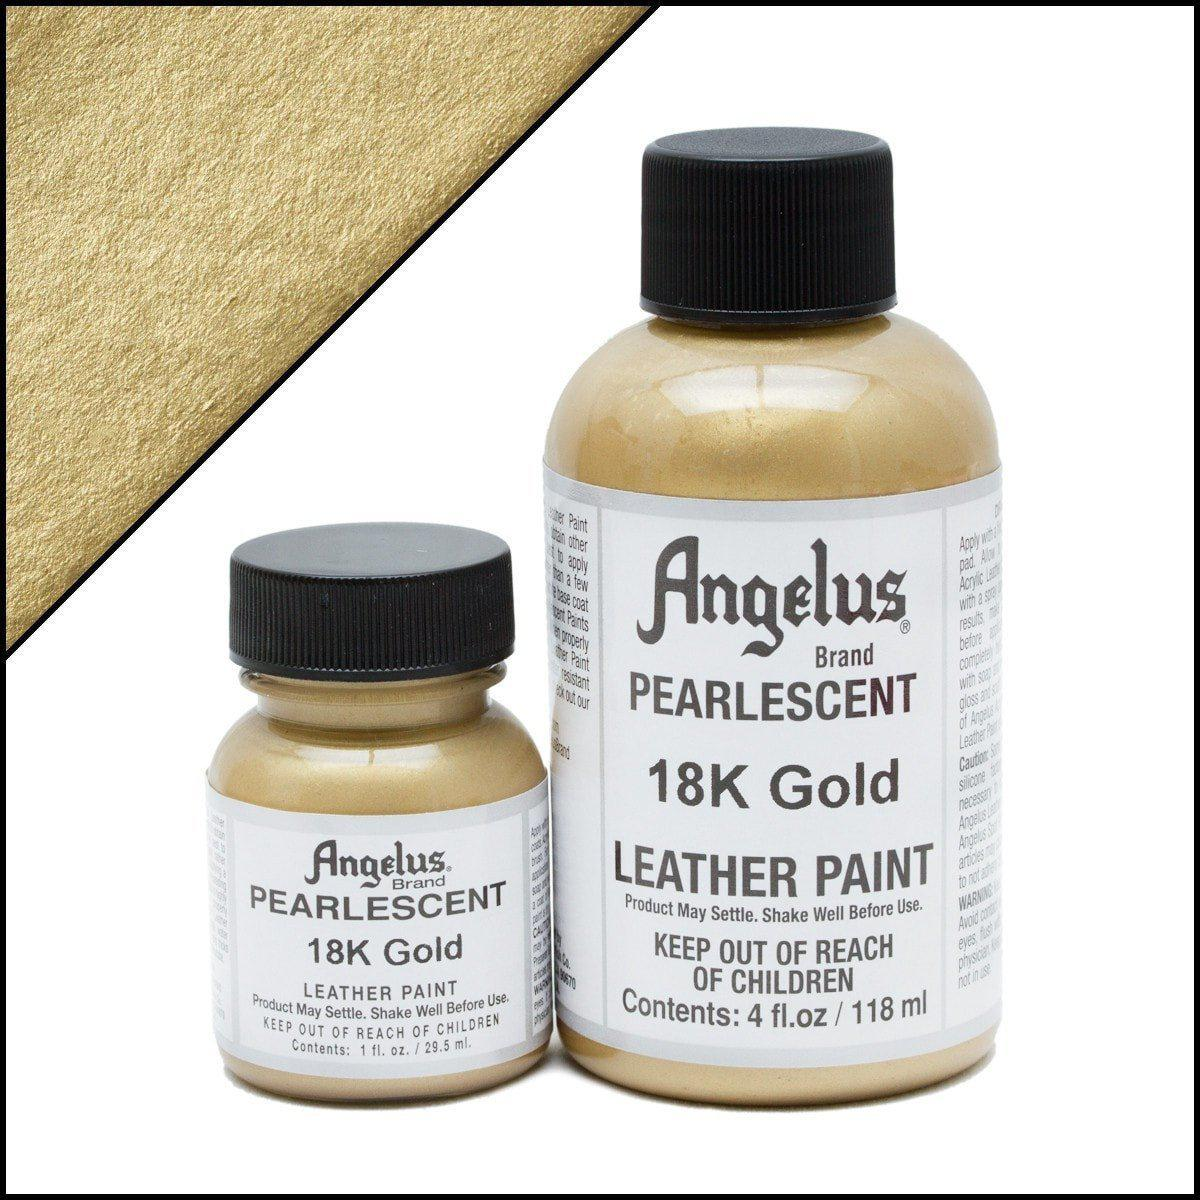 18K Gold Angelus Pearlescent Leather